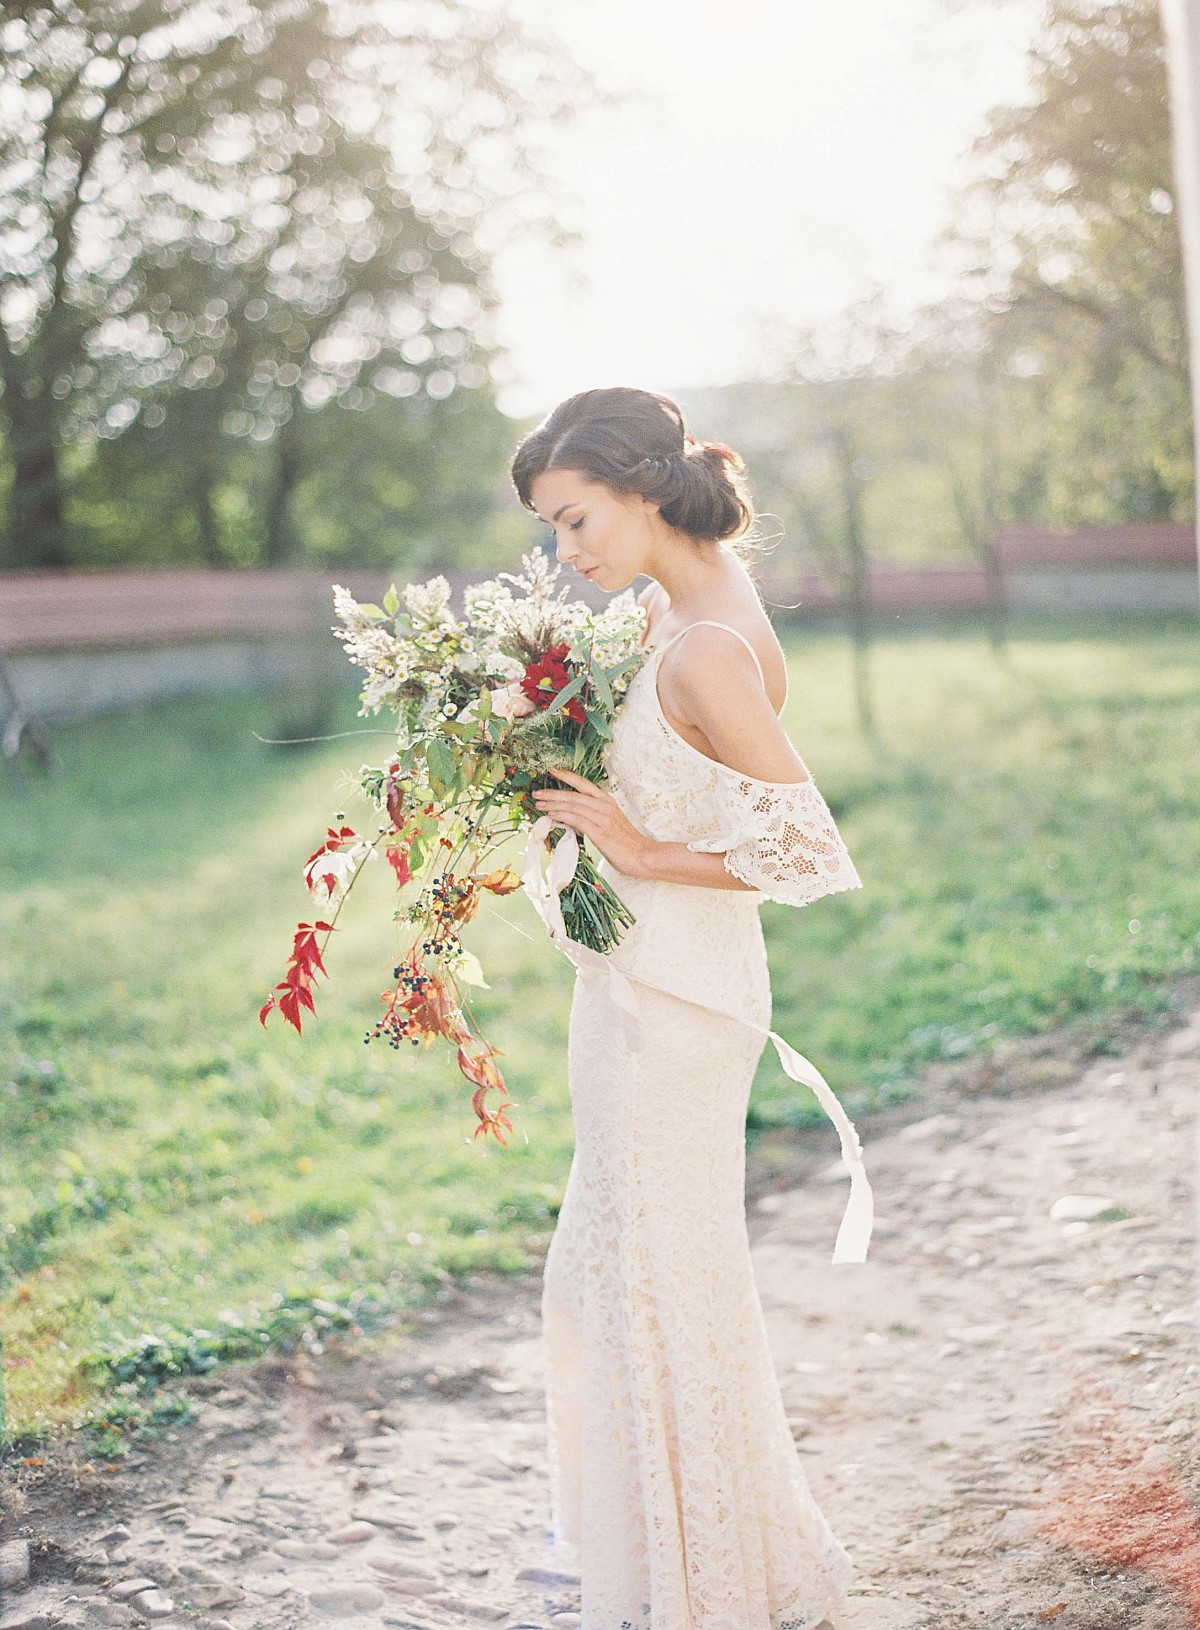 Casual Picnic Inspired Bridal Style